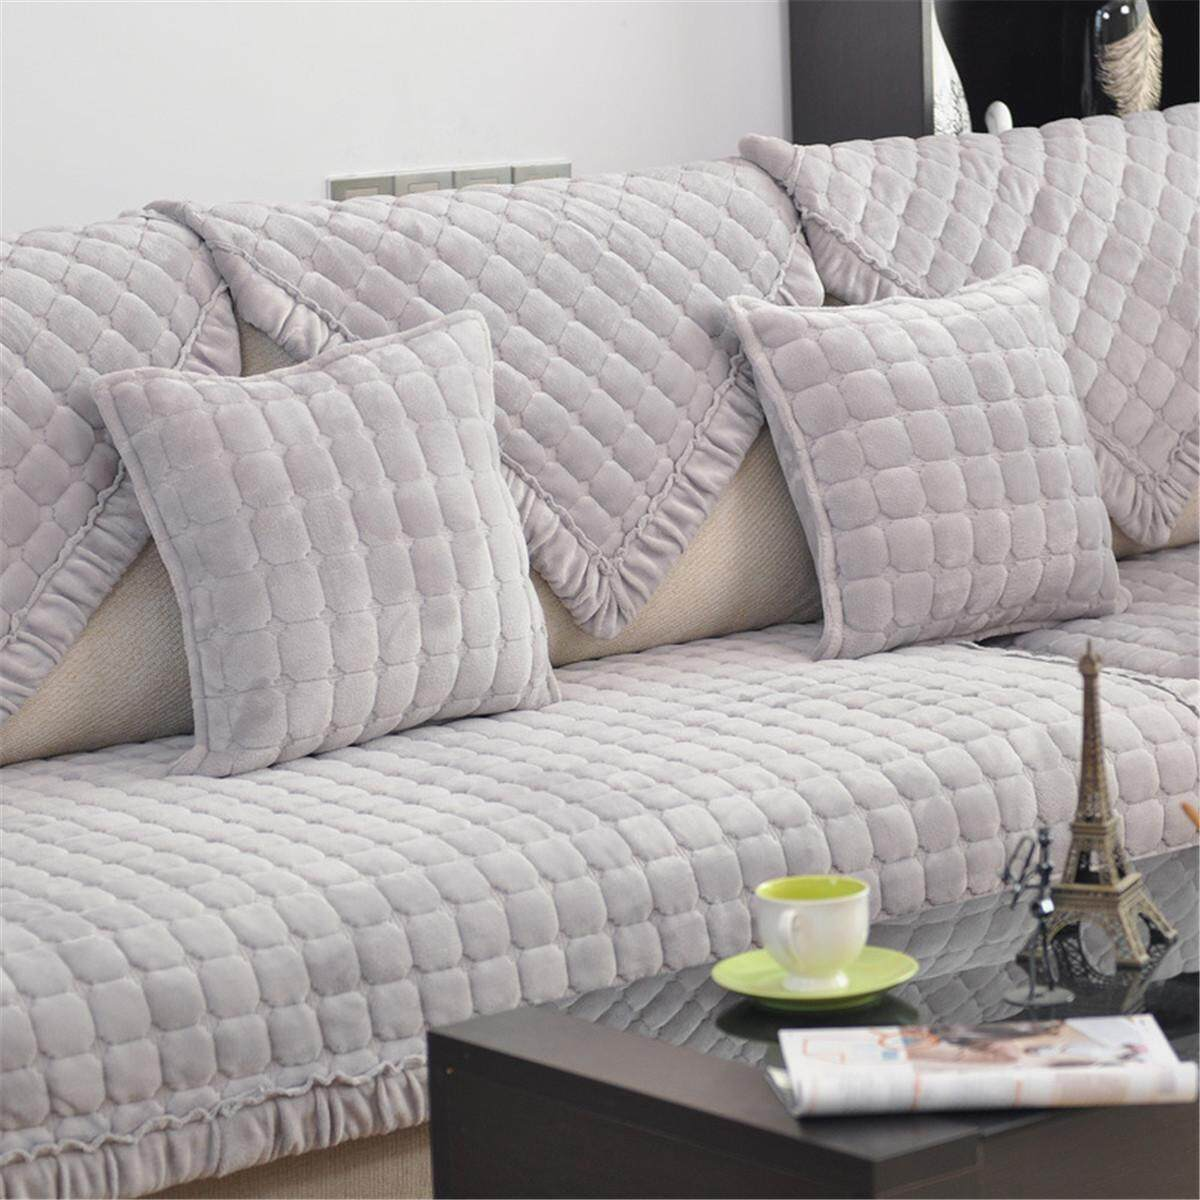 Easy Stretch Fit Couch Sofa Cover Lounge Flannel Plush Home Seaters Slipcover # 110x160cm